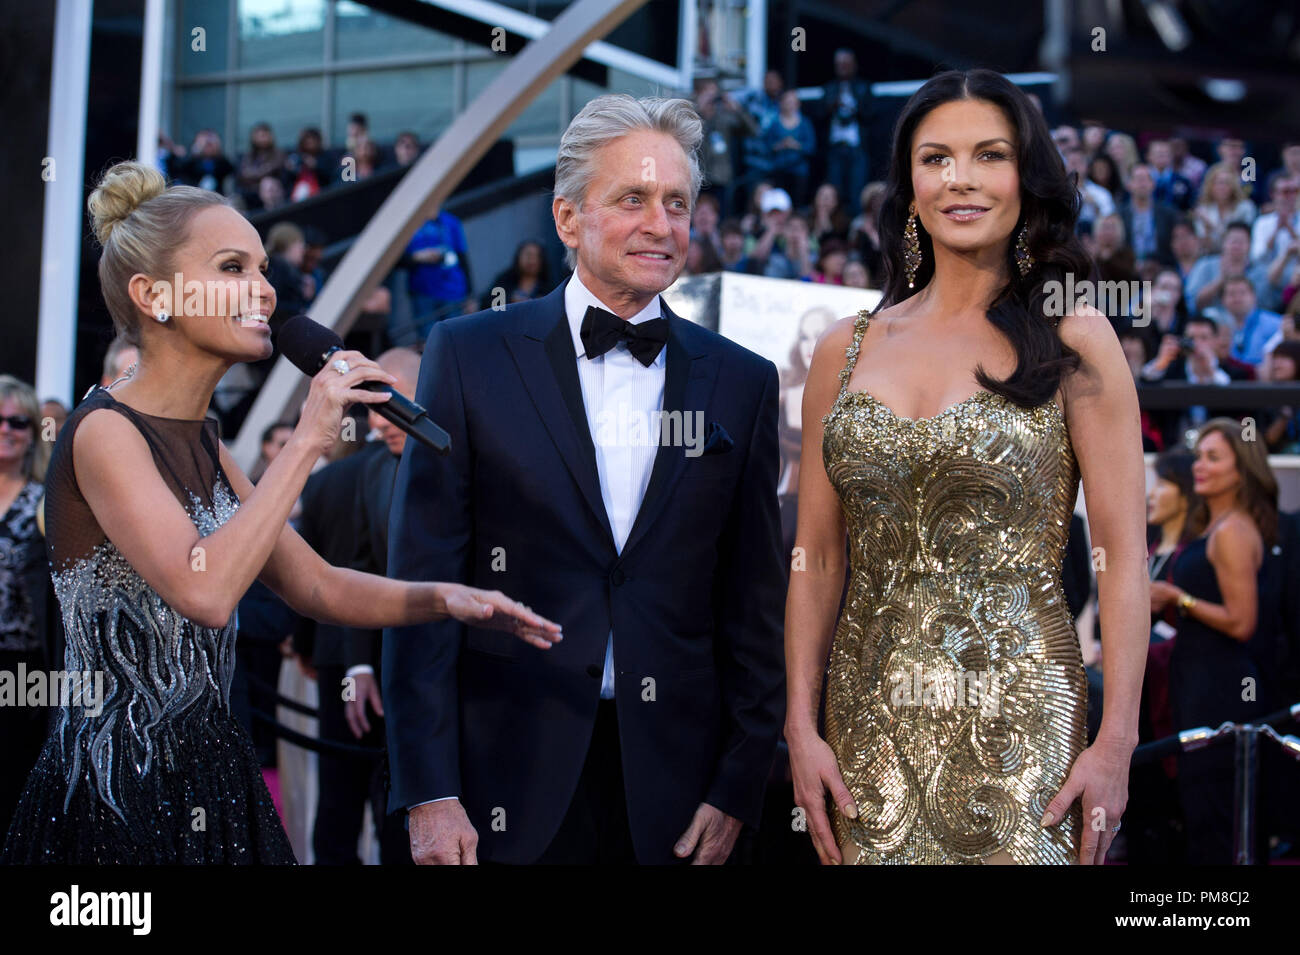 Kristin Chenoweth interviews Michael Douglas and Catherine Zeta-Jones on the red carpet for The Oscars® at the Dolby® Theatre in Hollywood, CA February 24, 2013. - Stock Image